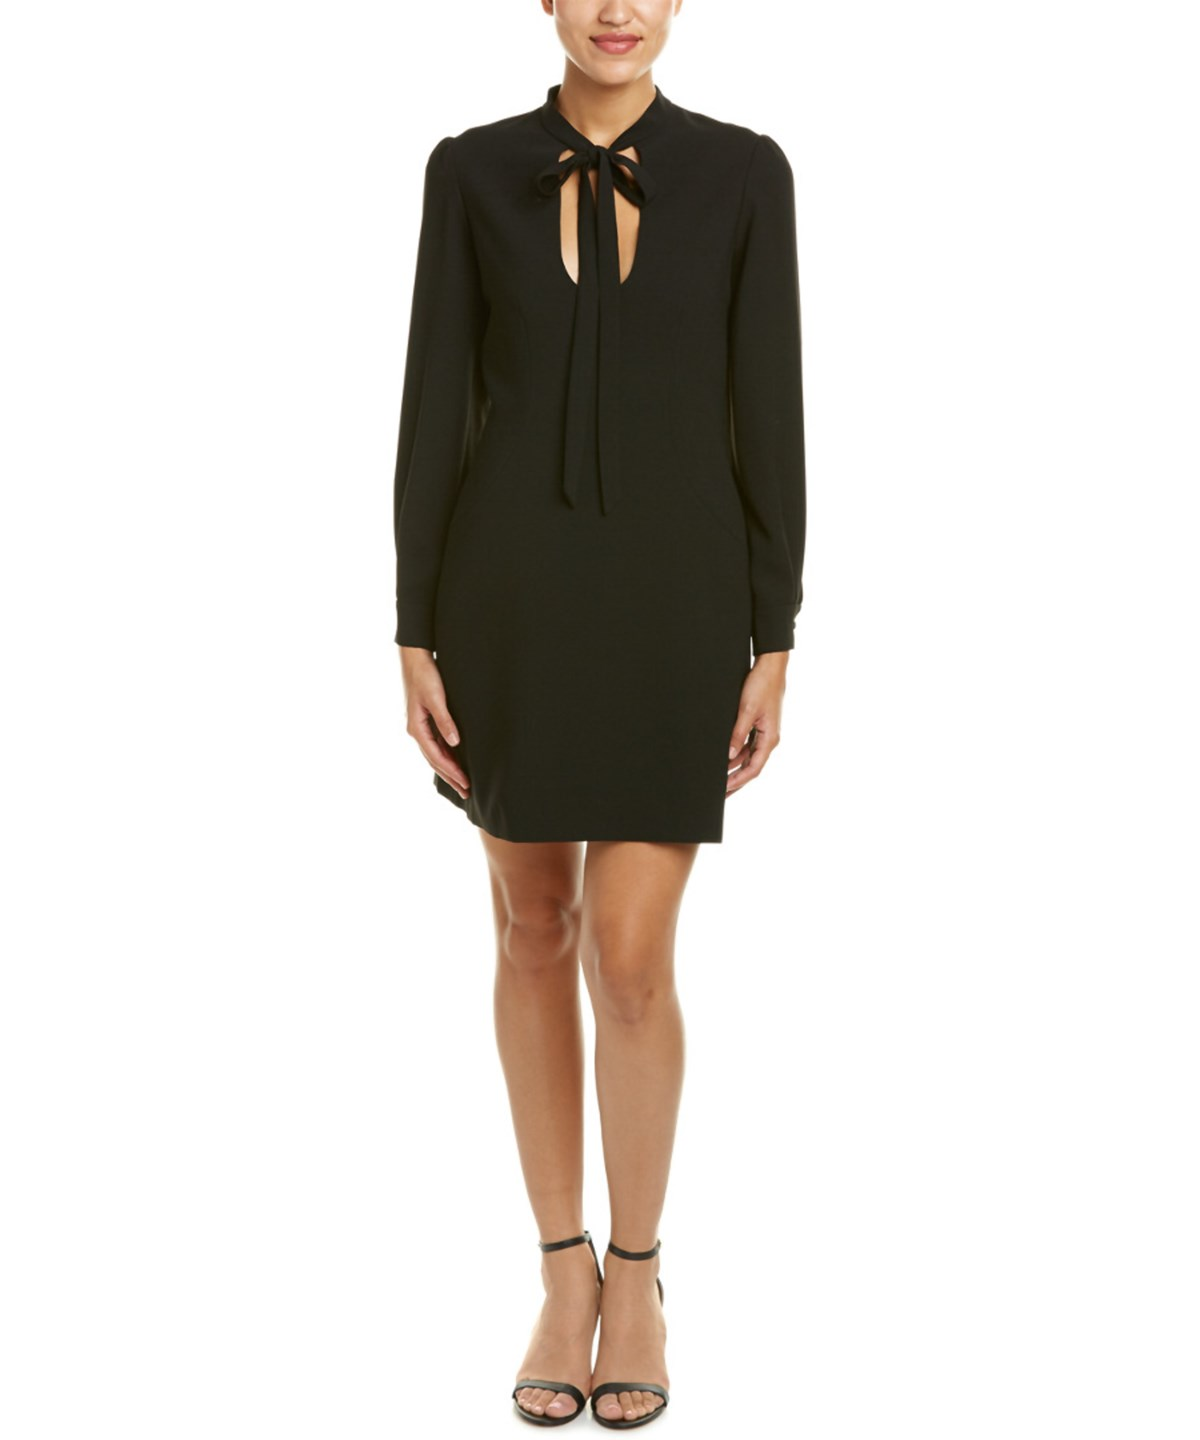 JILL JILL STUART SHEATH DRESS